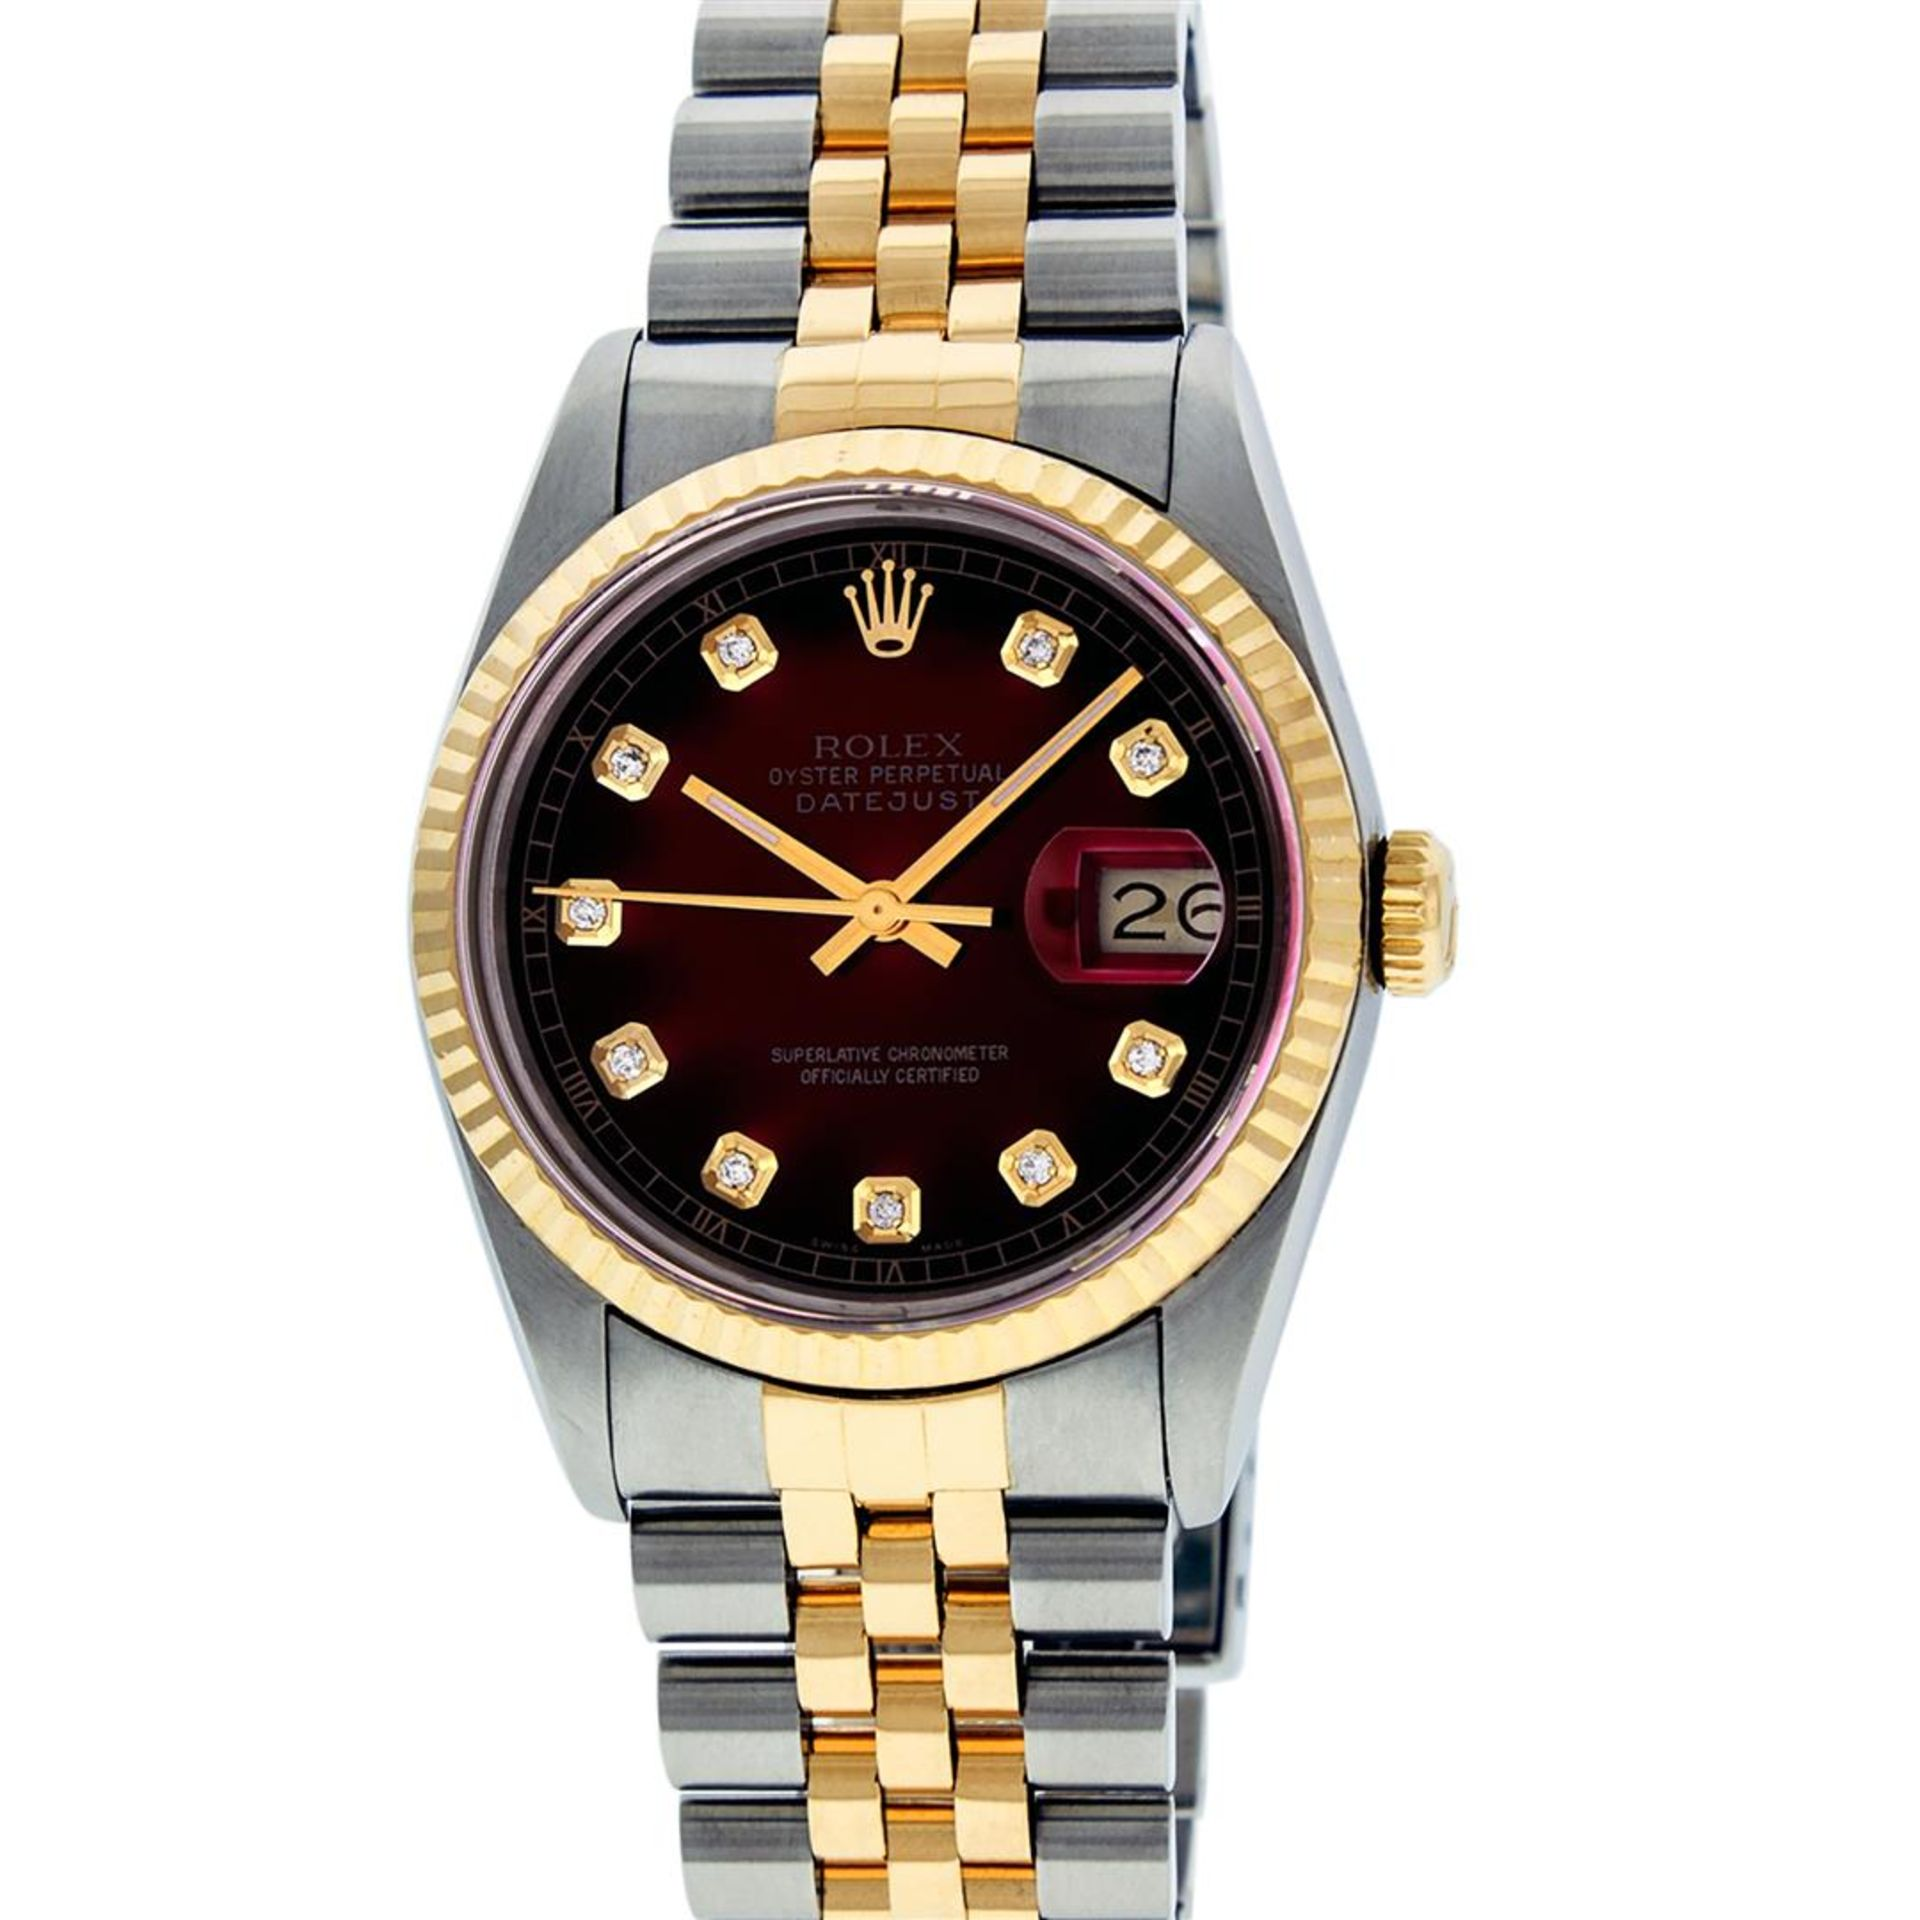 Rolex Mens 2 Tone Red Vignette Diamond 36MM Oyster Perpetual Datejust Wriswatch - Image 2 of 8